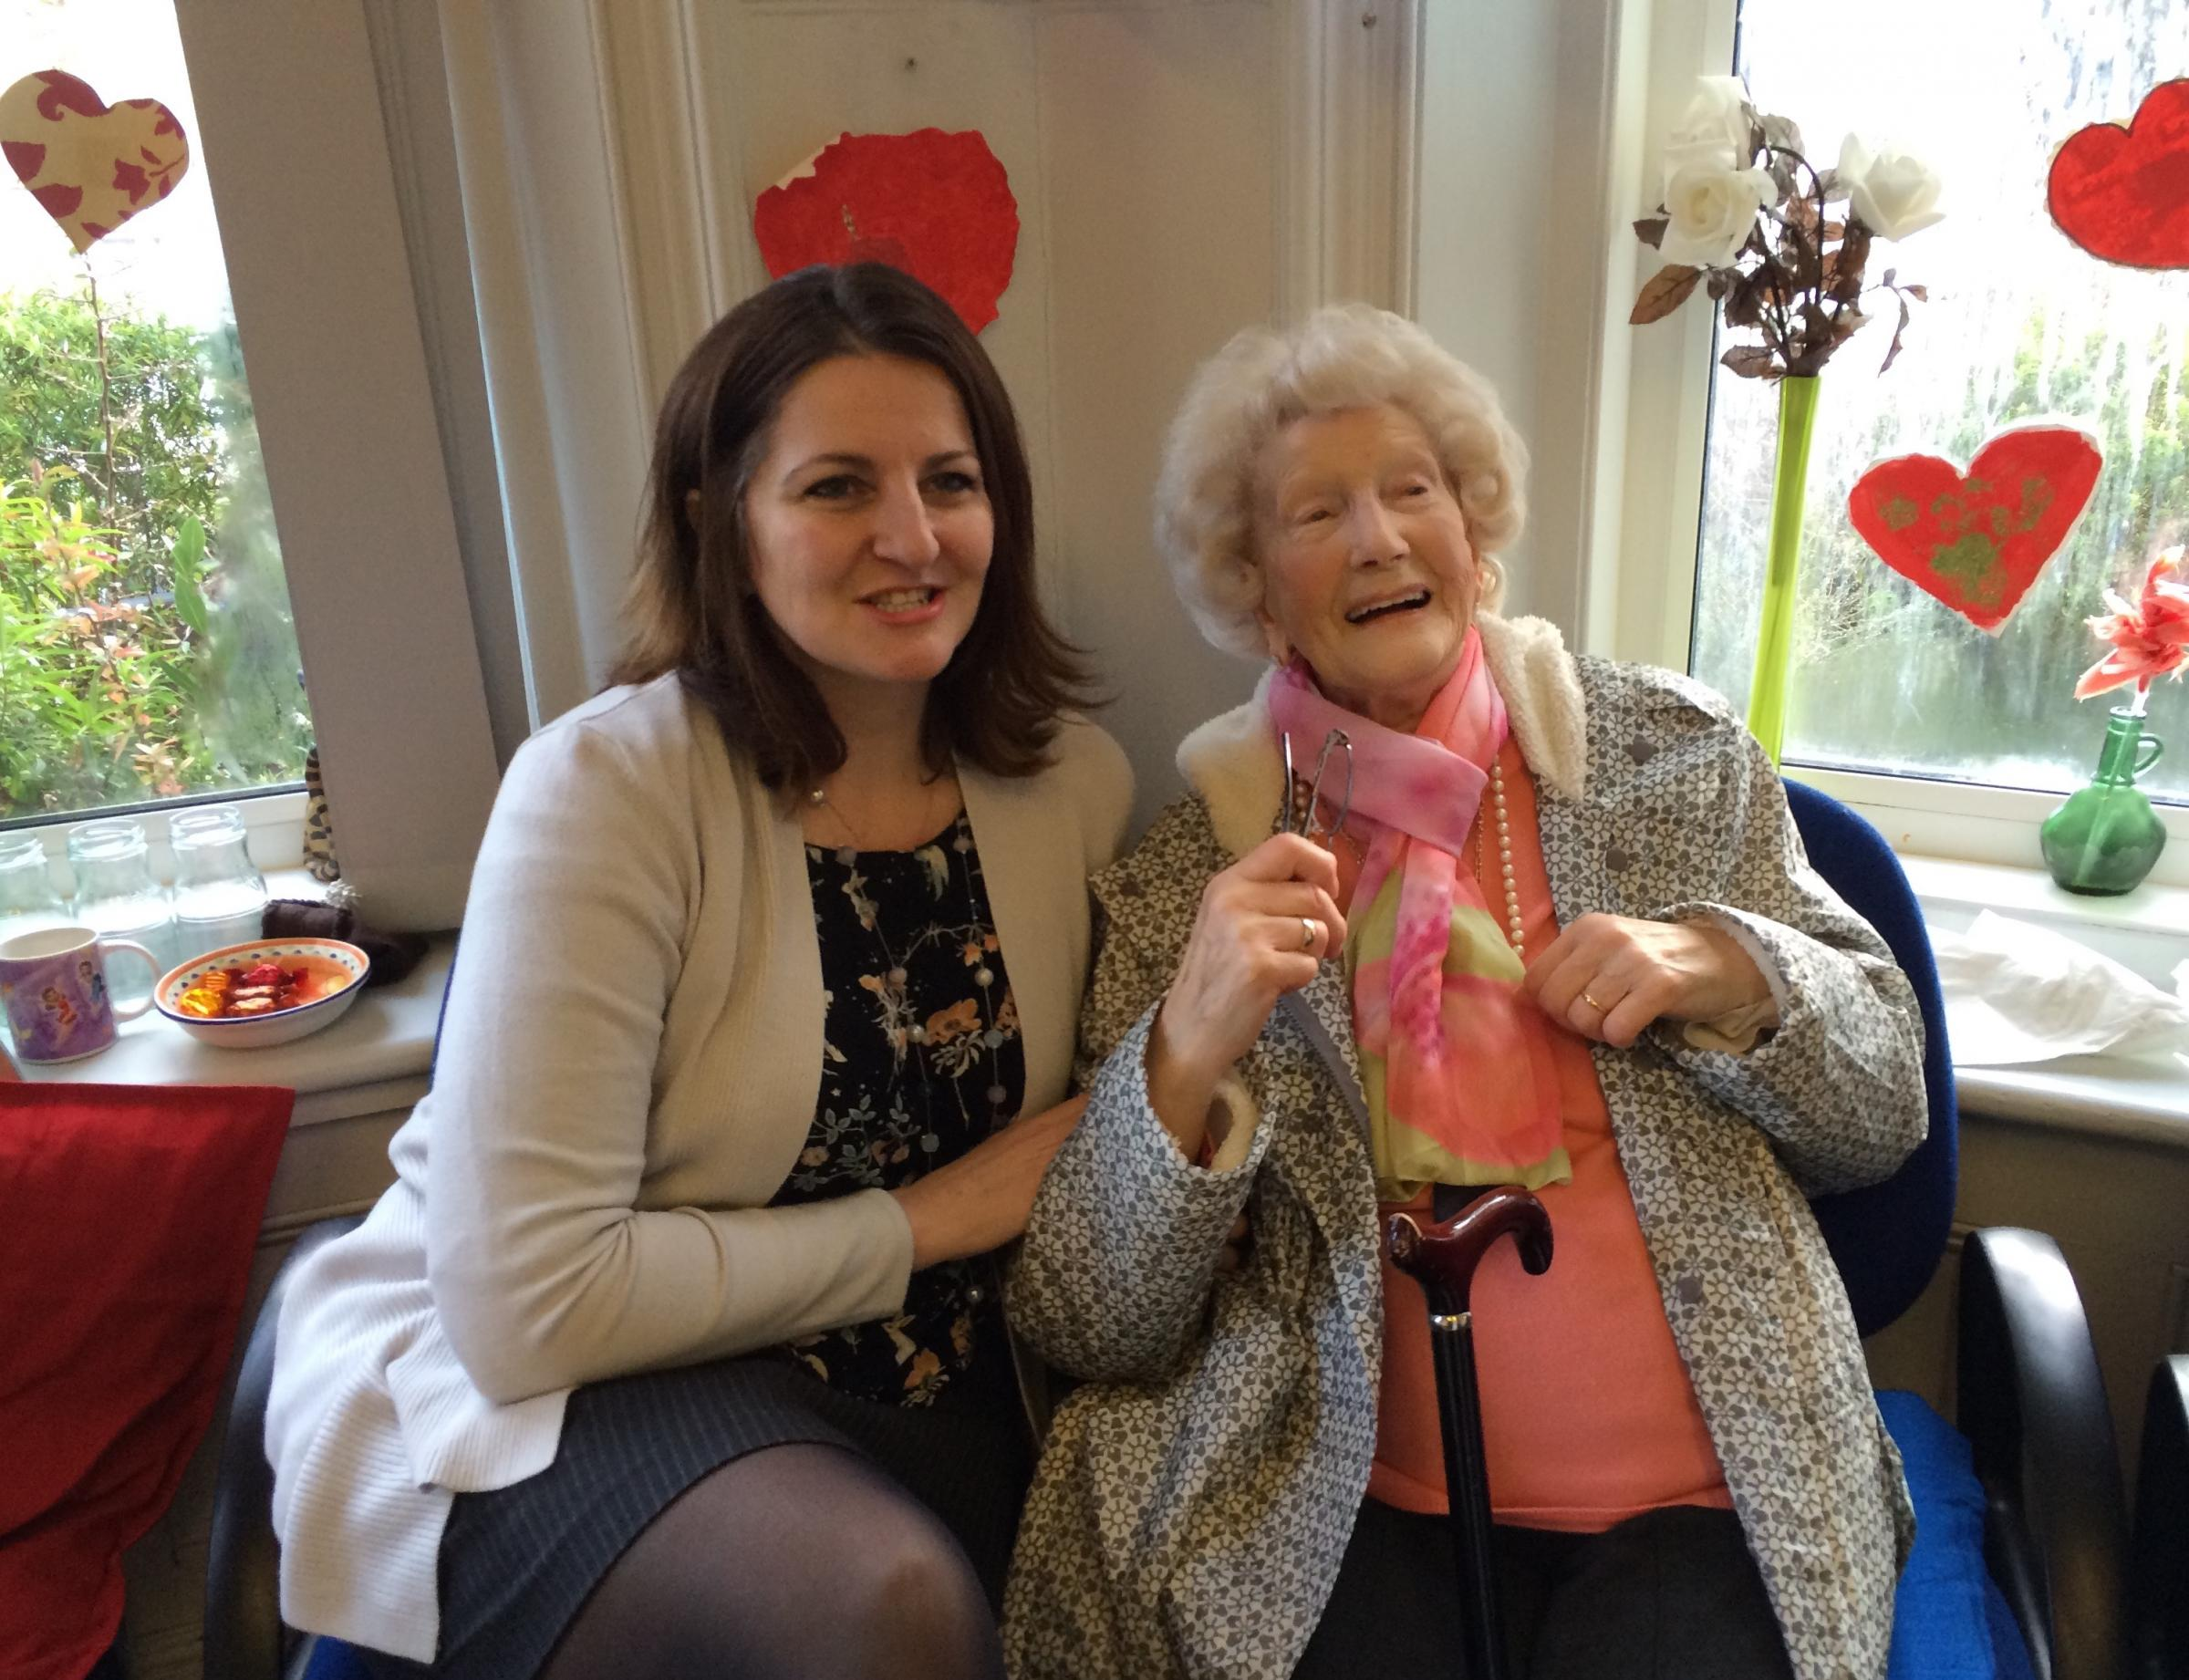 Eastbourne and Willingdon MP Caroline Ansell went back in time when she visited the 1940s themed Valentine's Ball at the Ivy House Day Centre